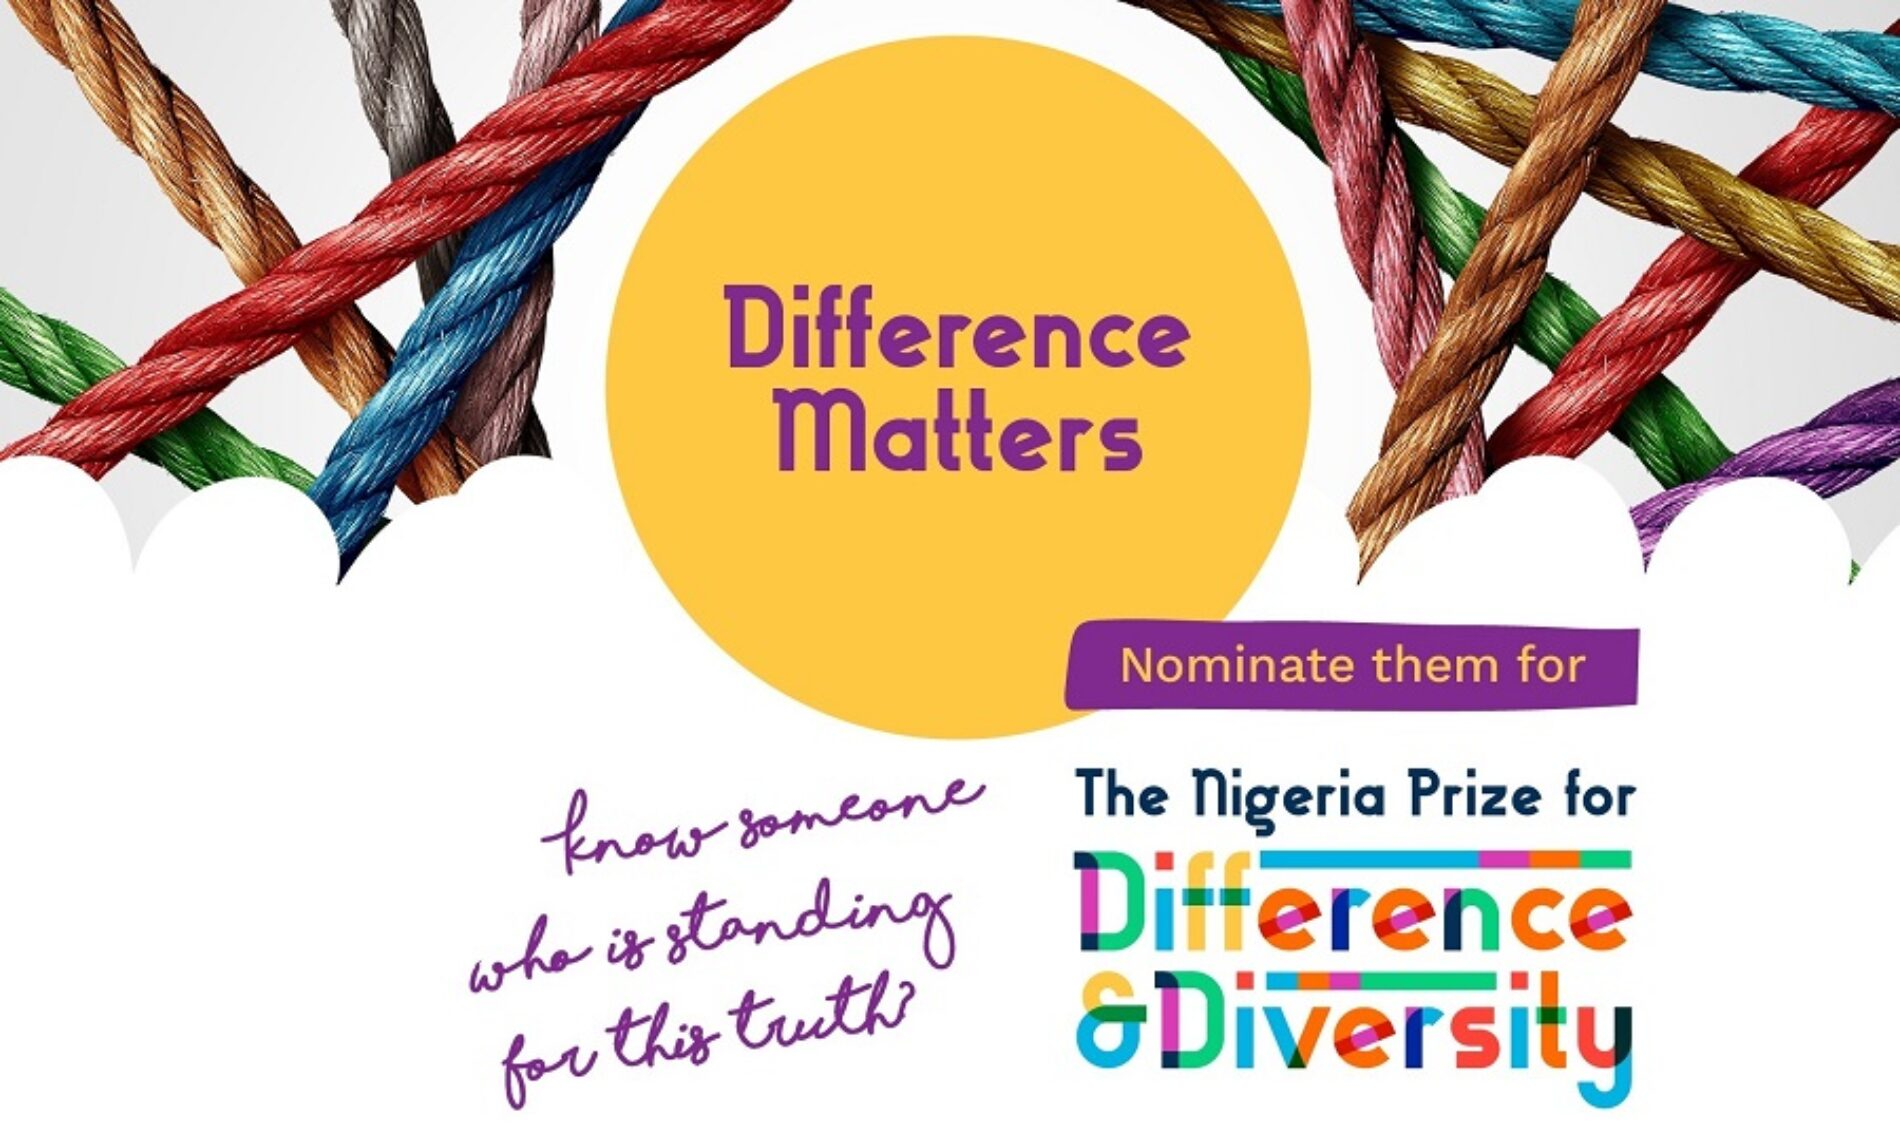 The Nigeria Prize for Difference and Diversity announces judges and advisory board